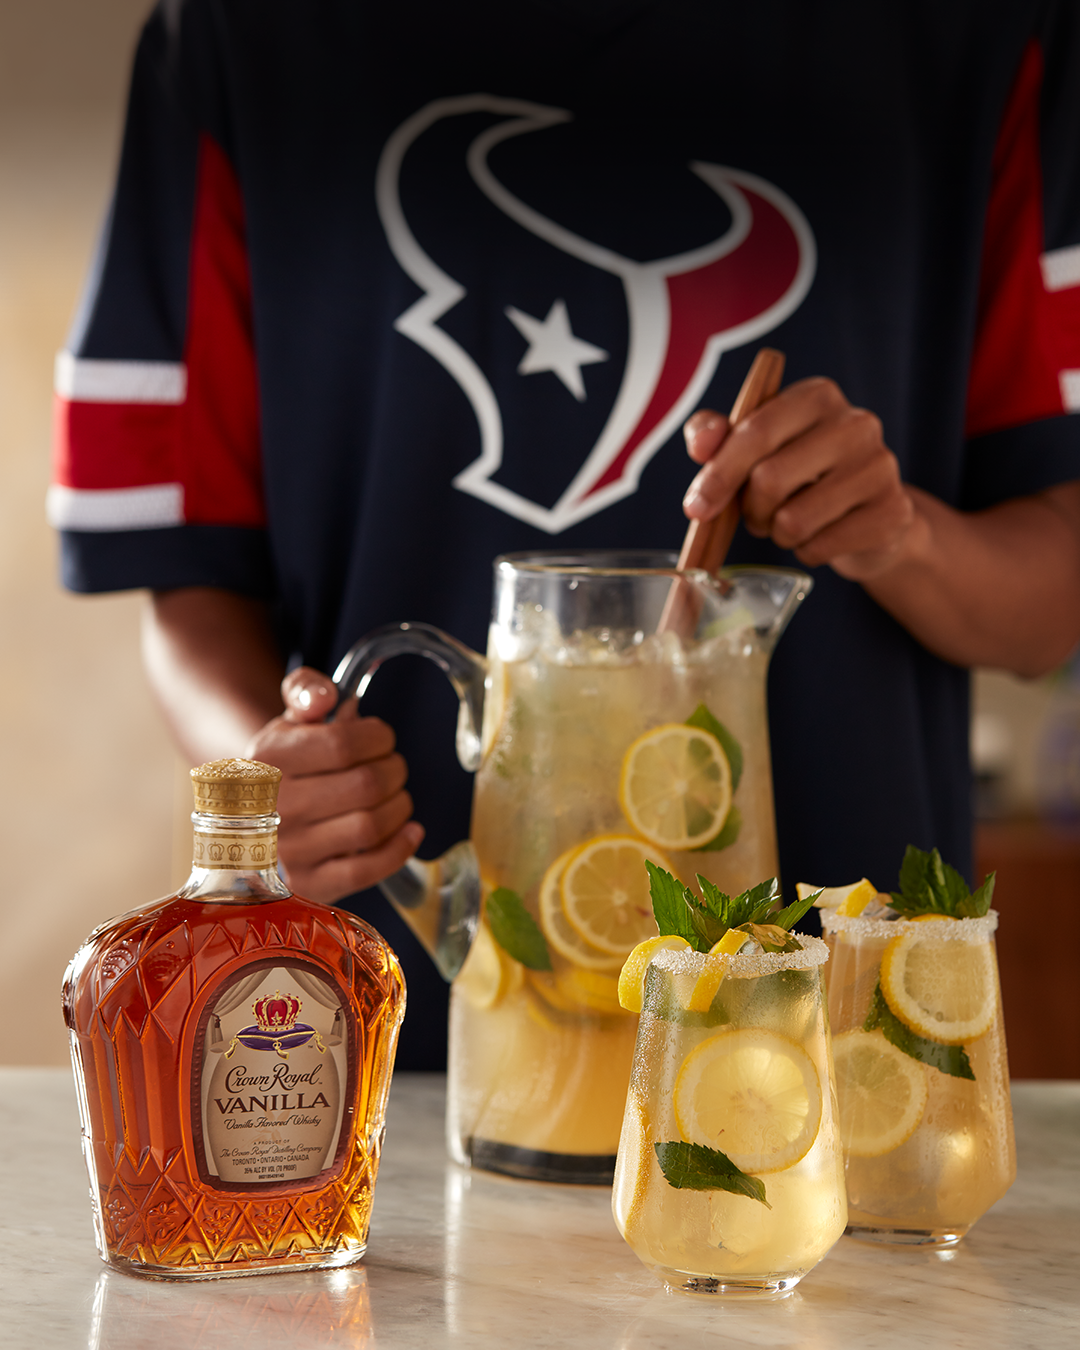 Houston Texans (Royal Lemonade) with a bottle of Crown Royal Vanilla